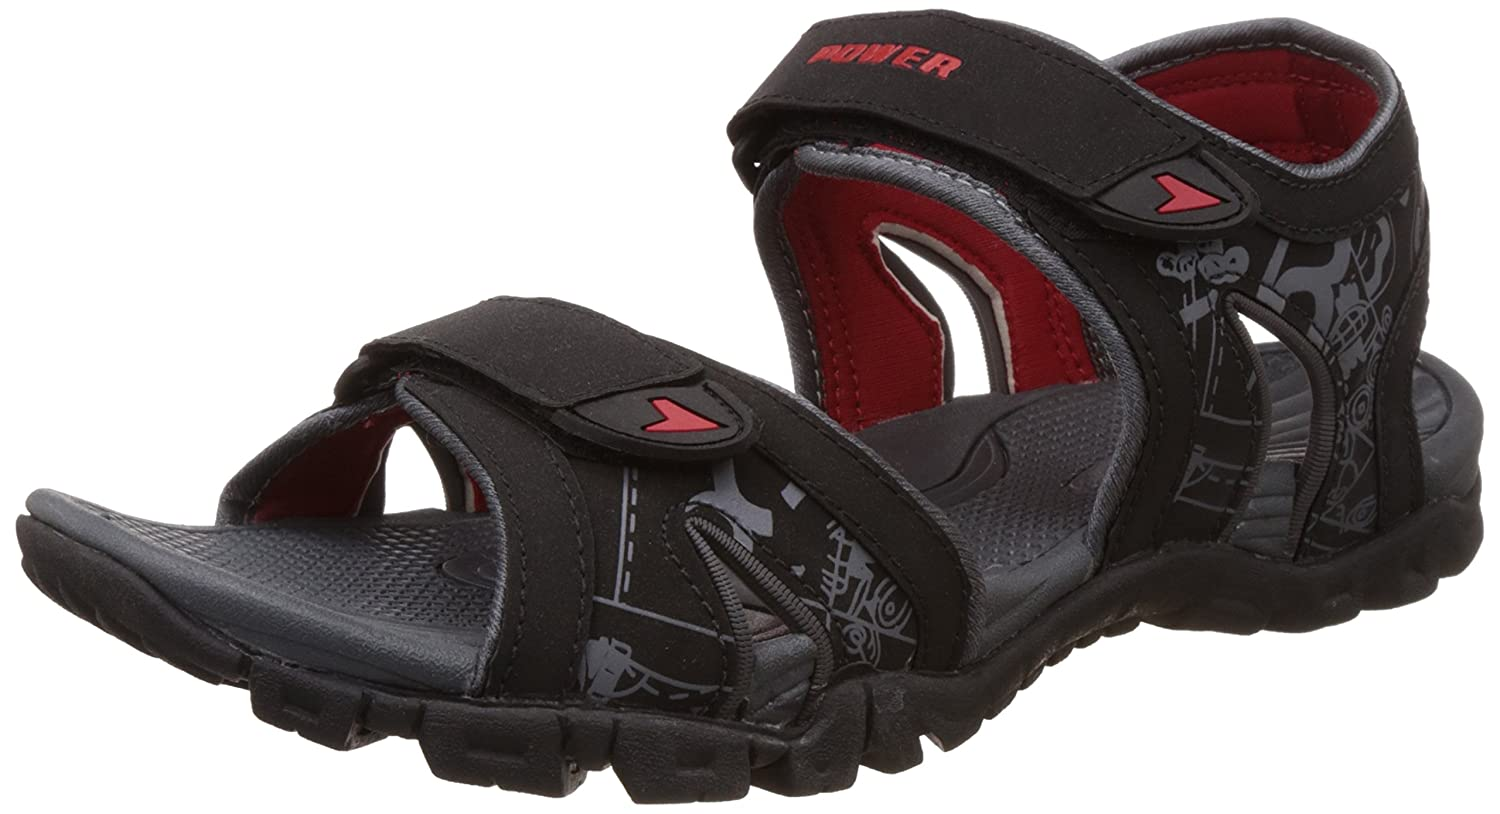 Flat 40% Off On Bata Products By Amazon | Power Men's Cosmos Flip Flops Thong Sandals @ Rs.539